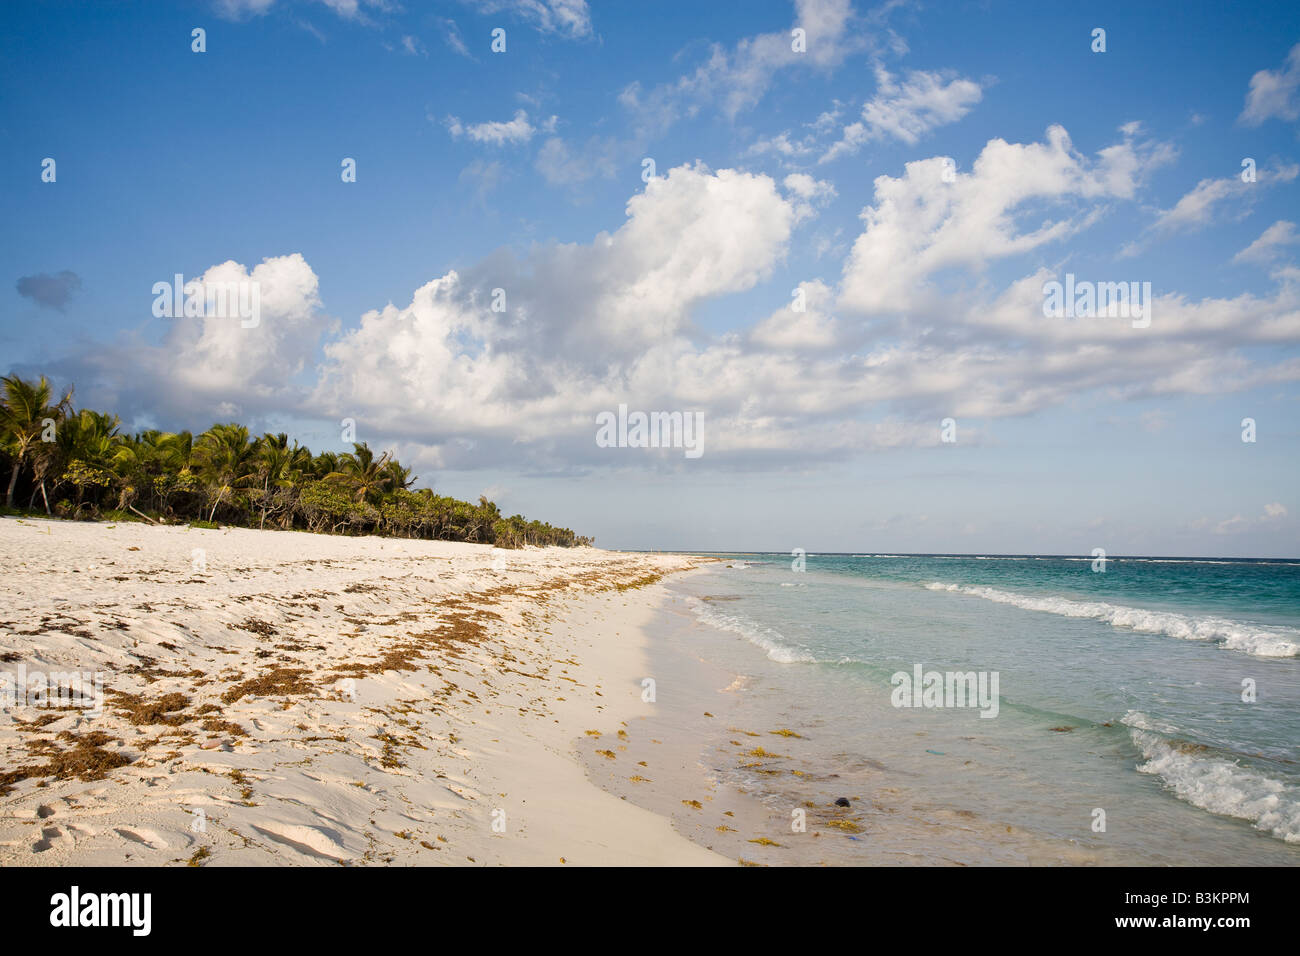 Deserted Beach: A long empty white sand beach in the sun just north of Tulum Tulum Quintana Roo Mexico - Stock Image